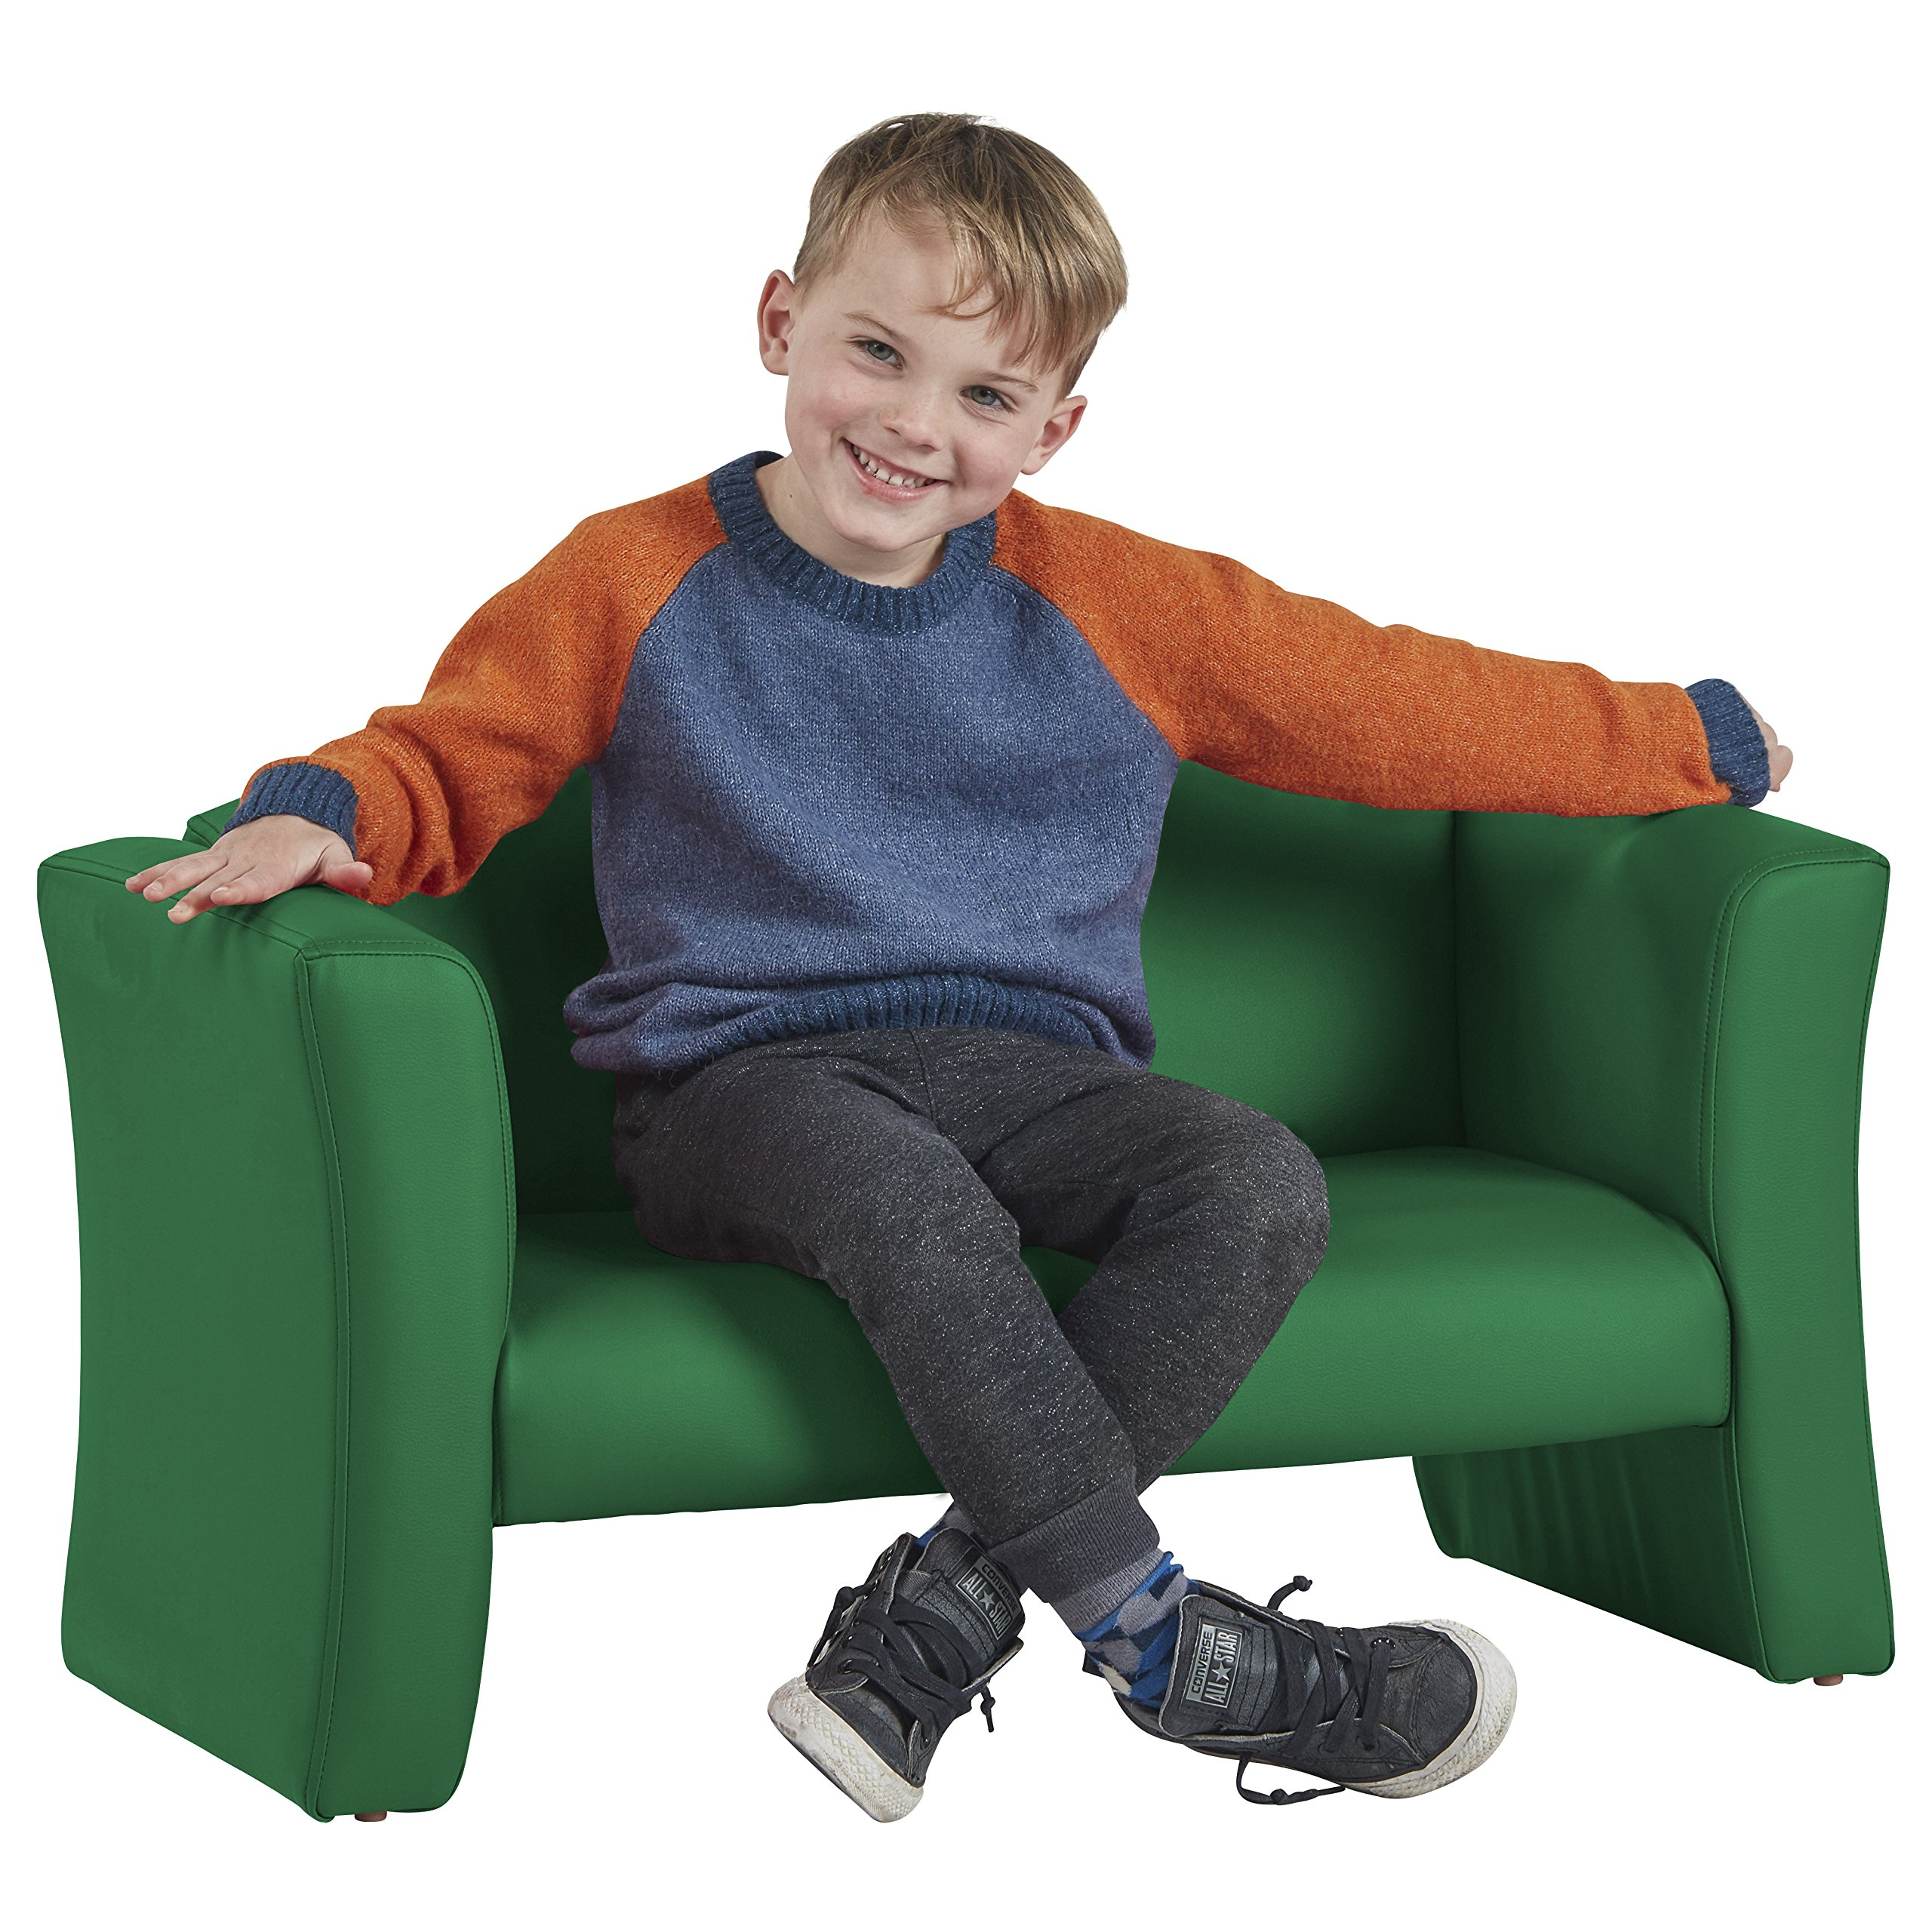 ECR4Kids SoftZone Gum Drop Upholstered Sofa for Kids - Daycare, Homeschool, Classroom Furniture, Home Decor - Green